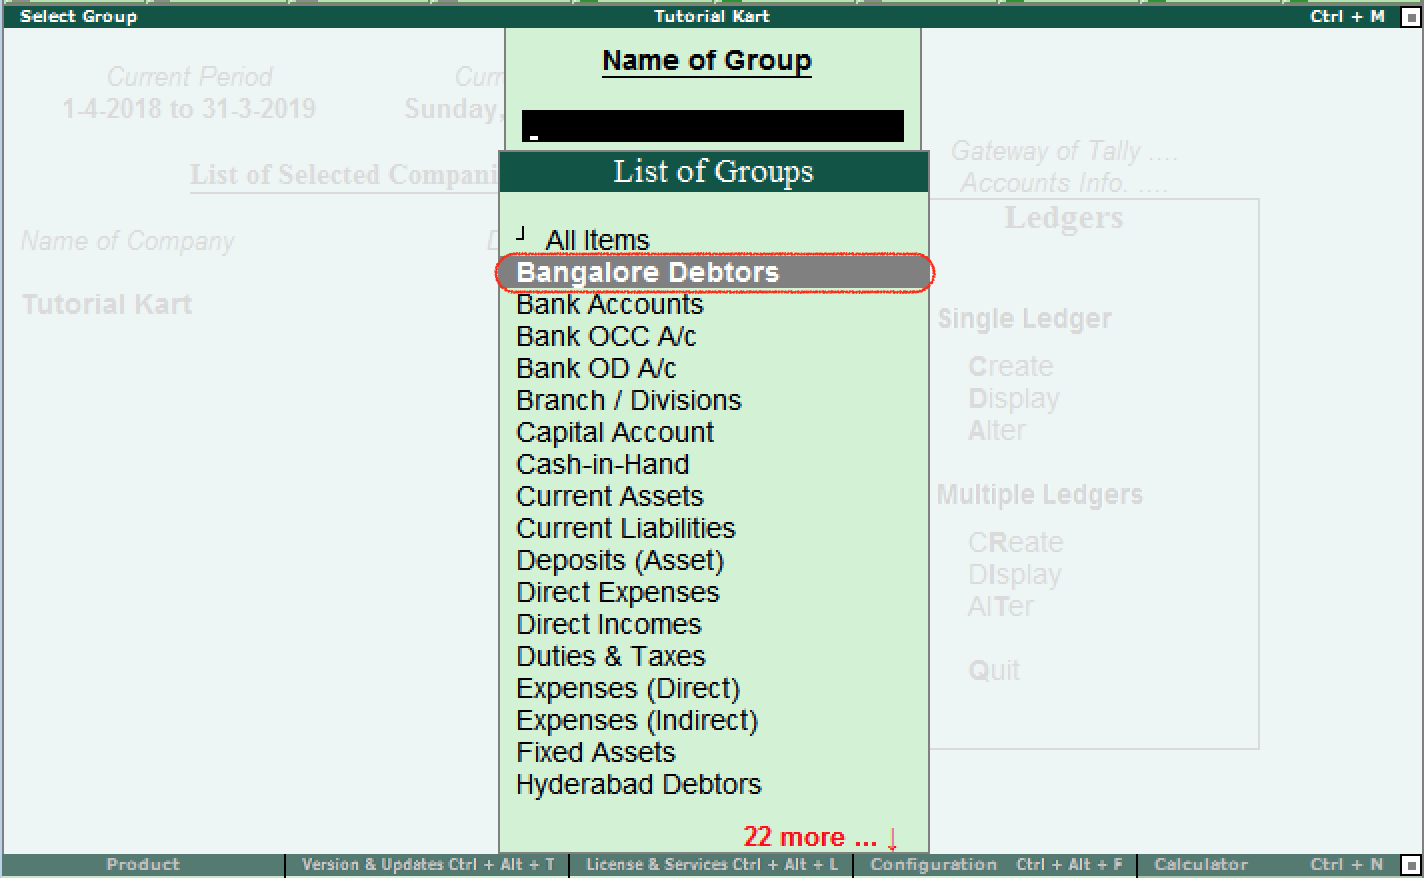 Select group for ledgers display